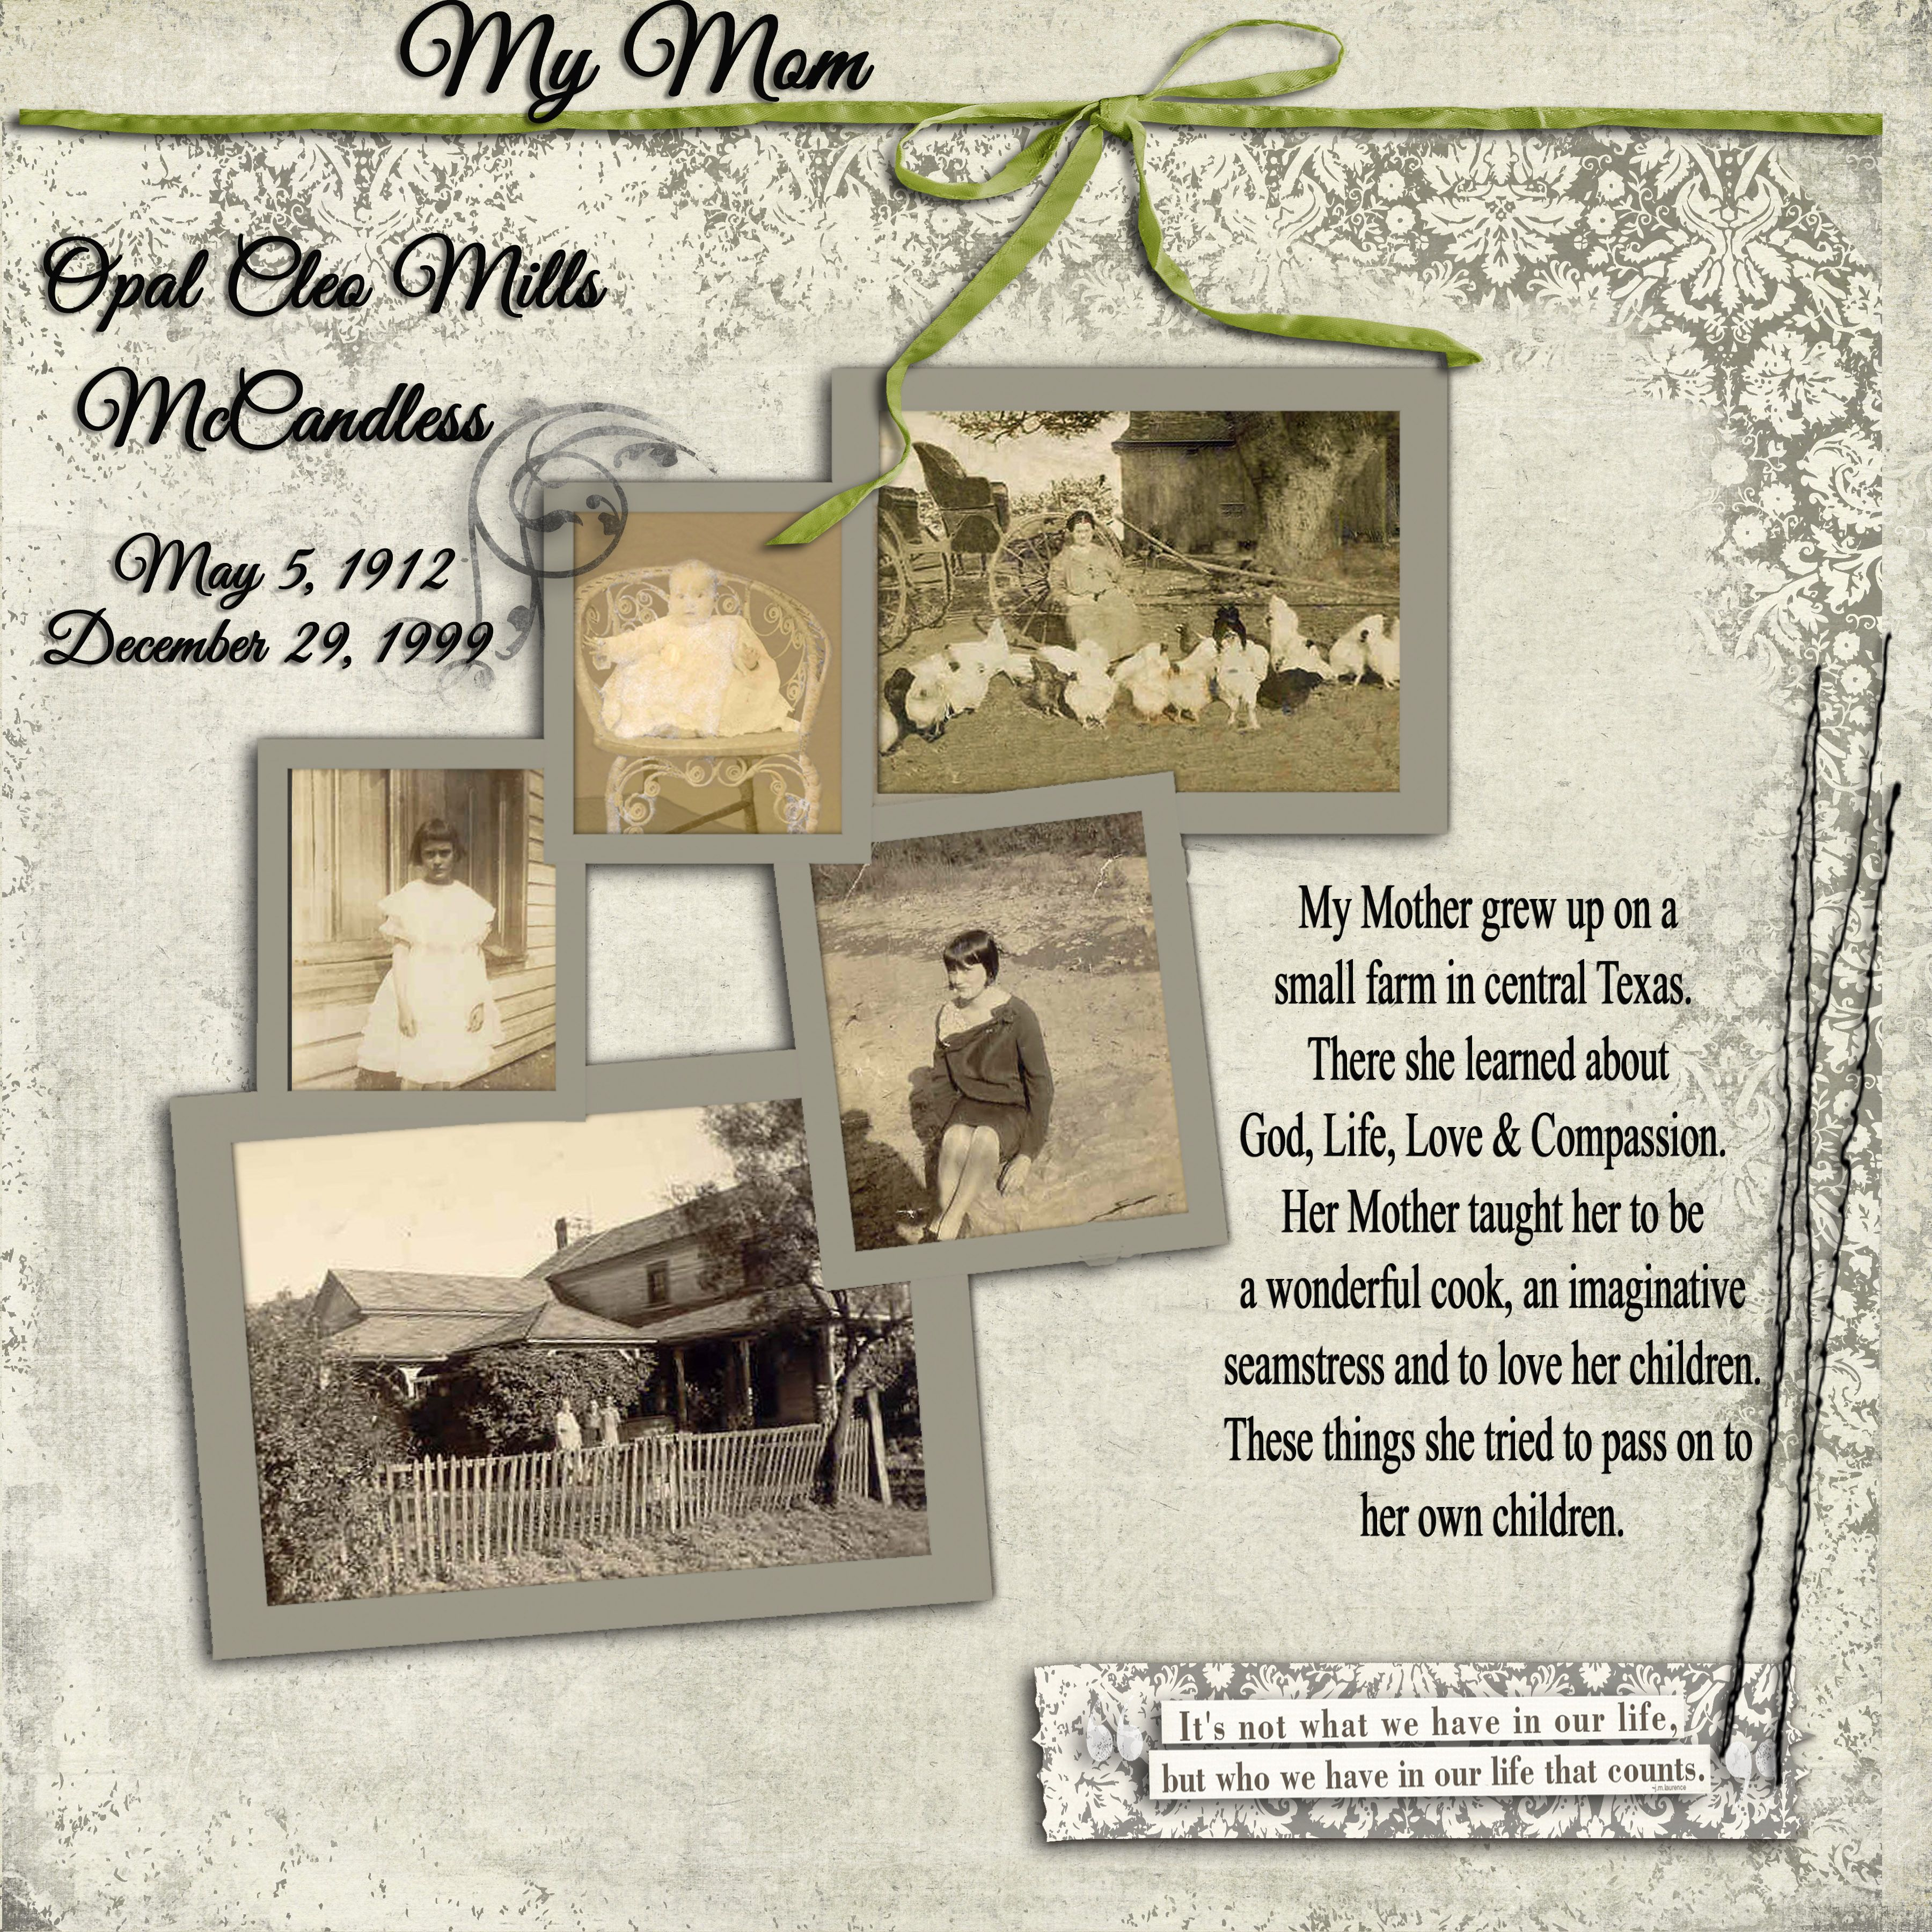 Opal Cleo Mills McCandless My Mom s Memorial Page